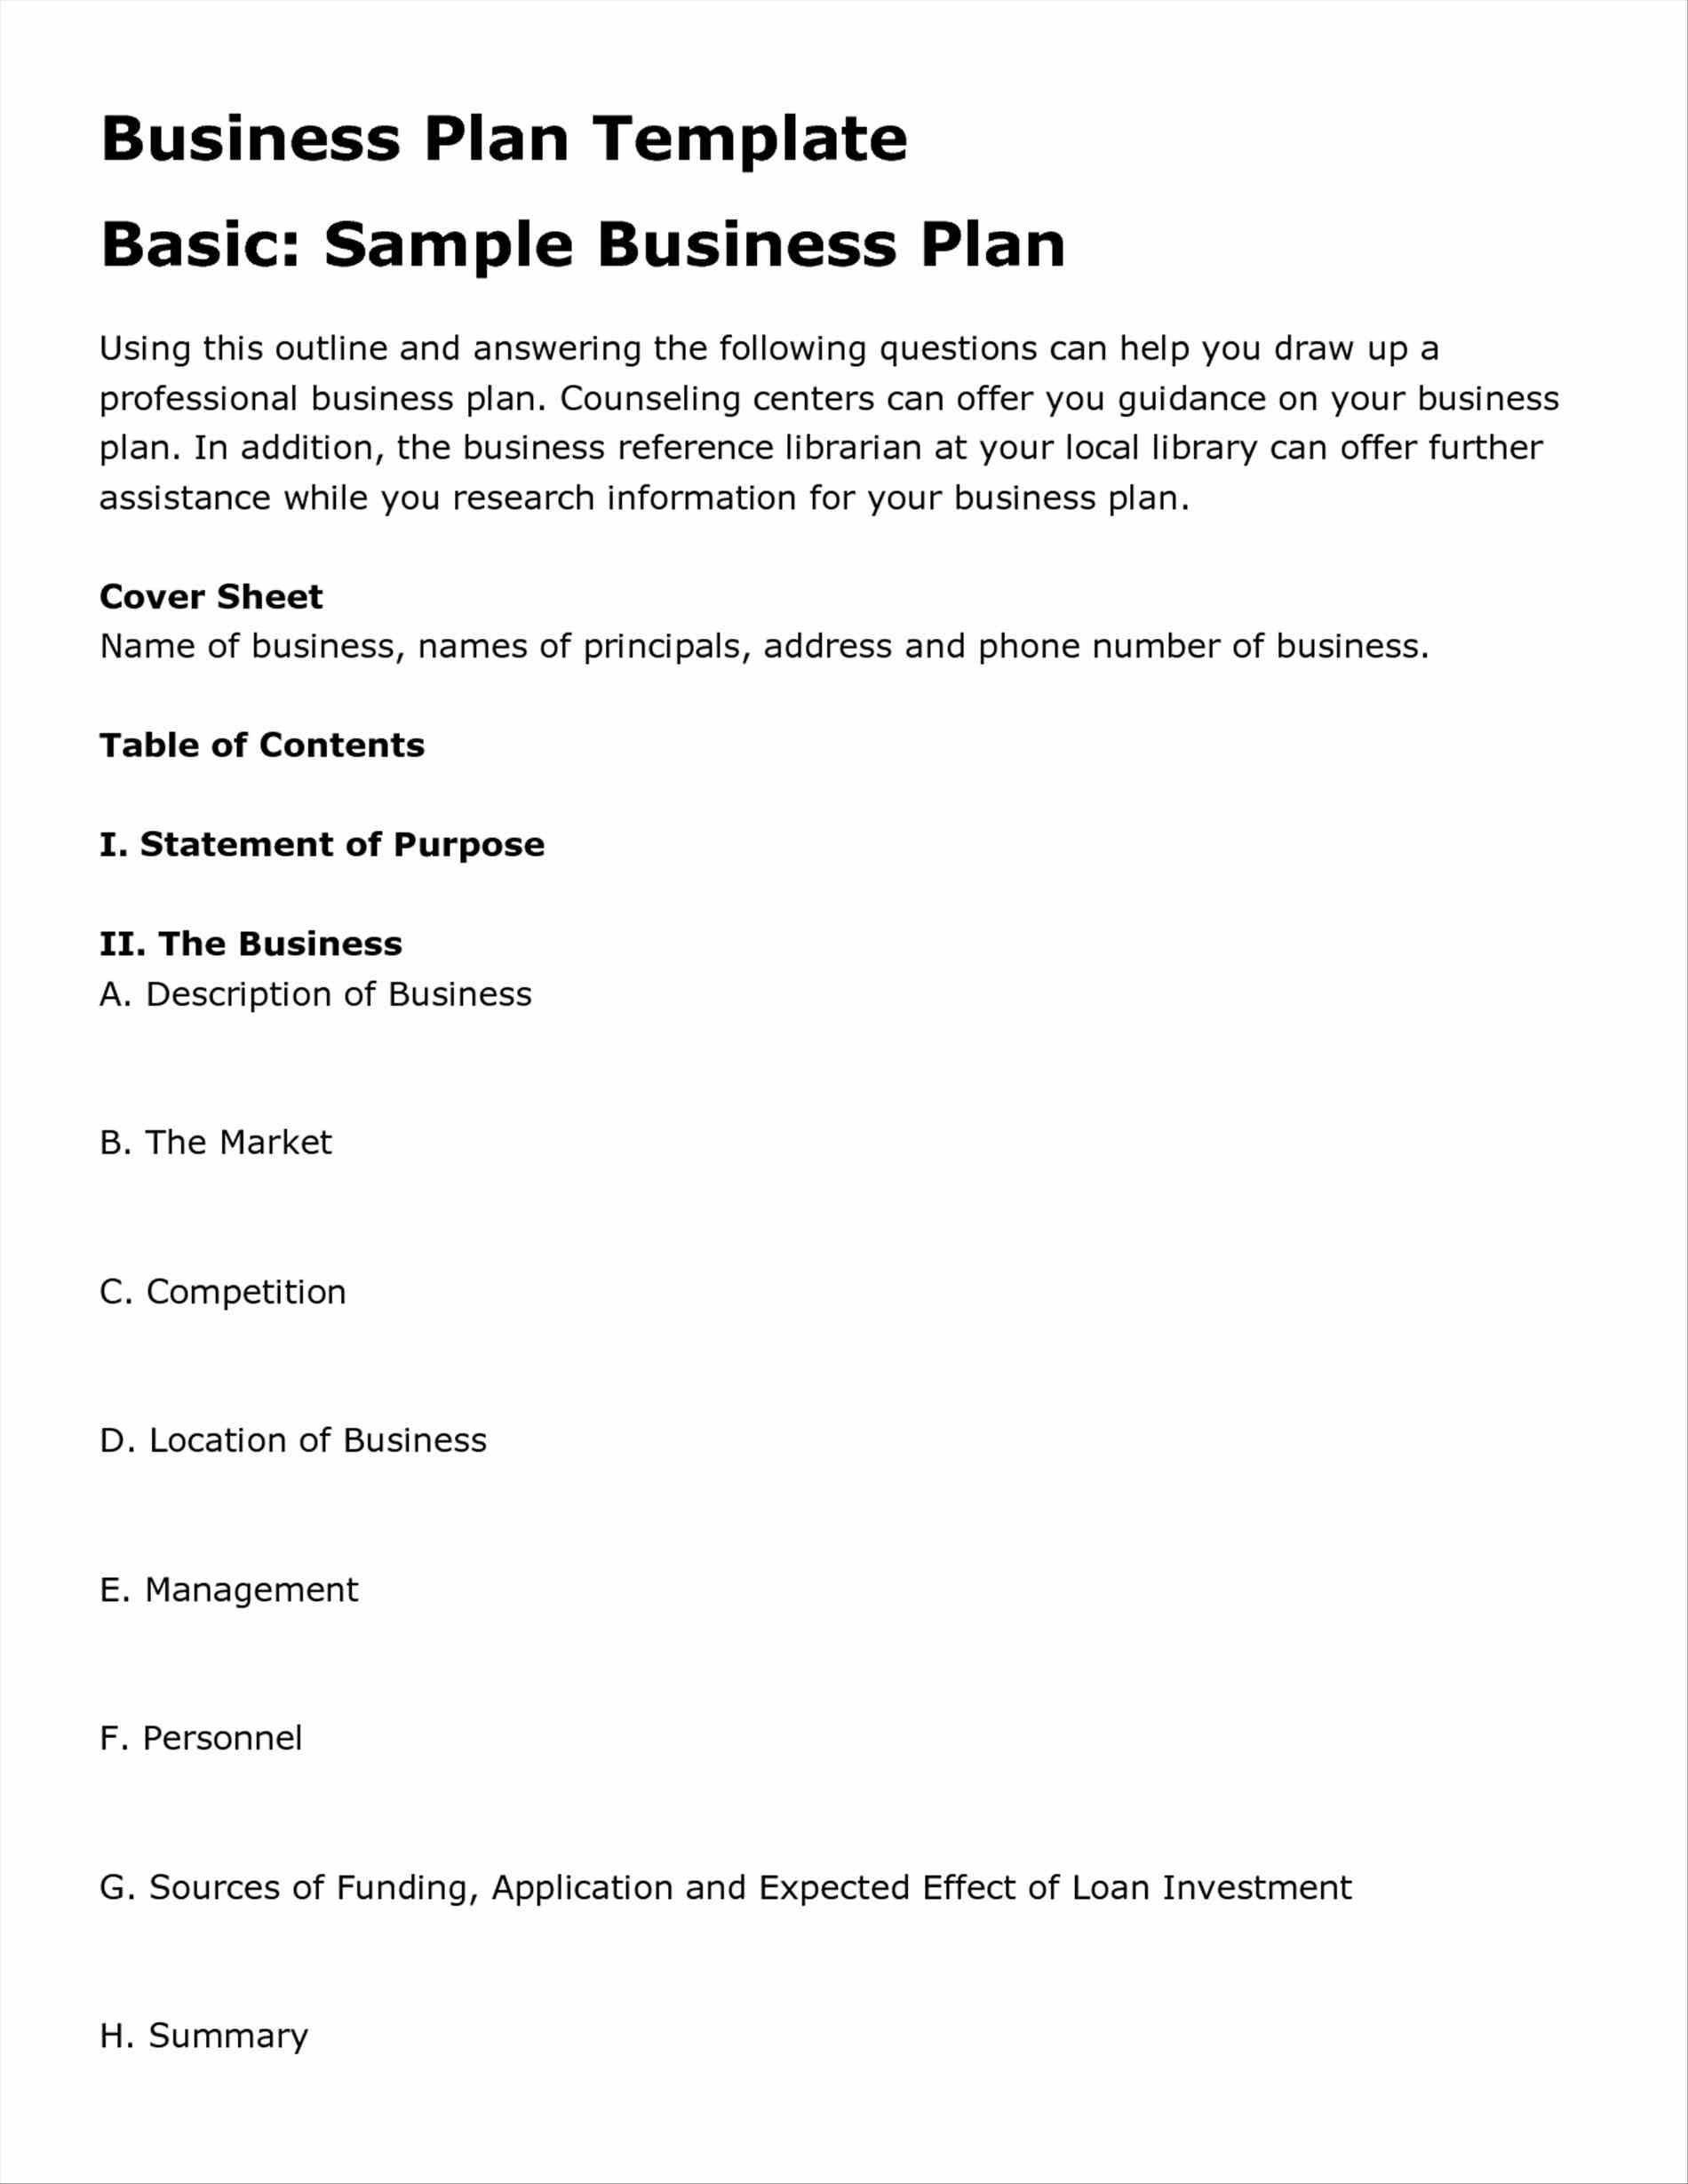 Business plan template restaurant templates in word excel pdf free business plan template restaurant templates in word excel pdf free cafe business plan template restaurant business plan templates in word excel cheaphphosting Choice Image